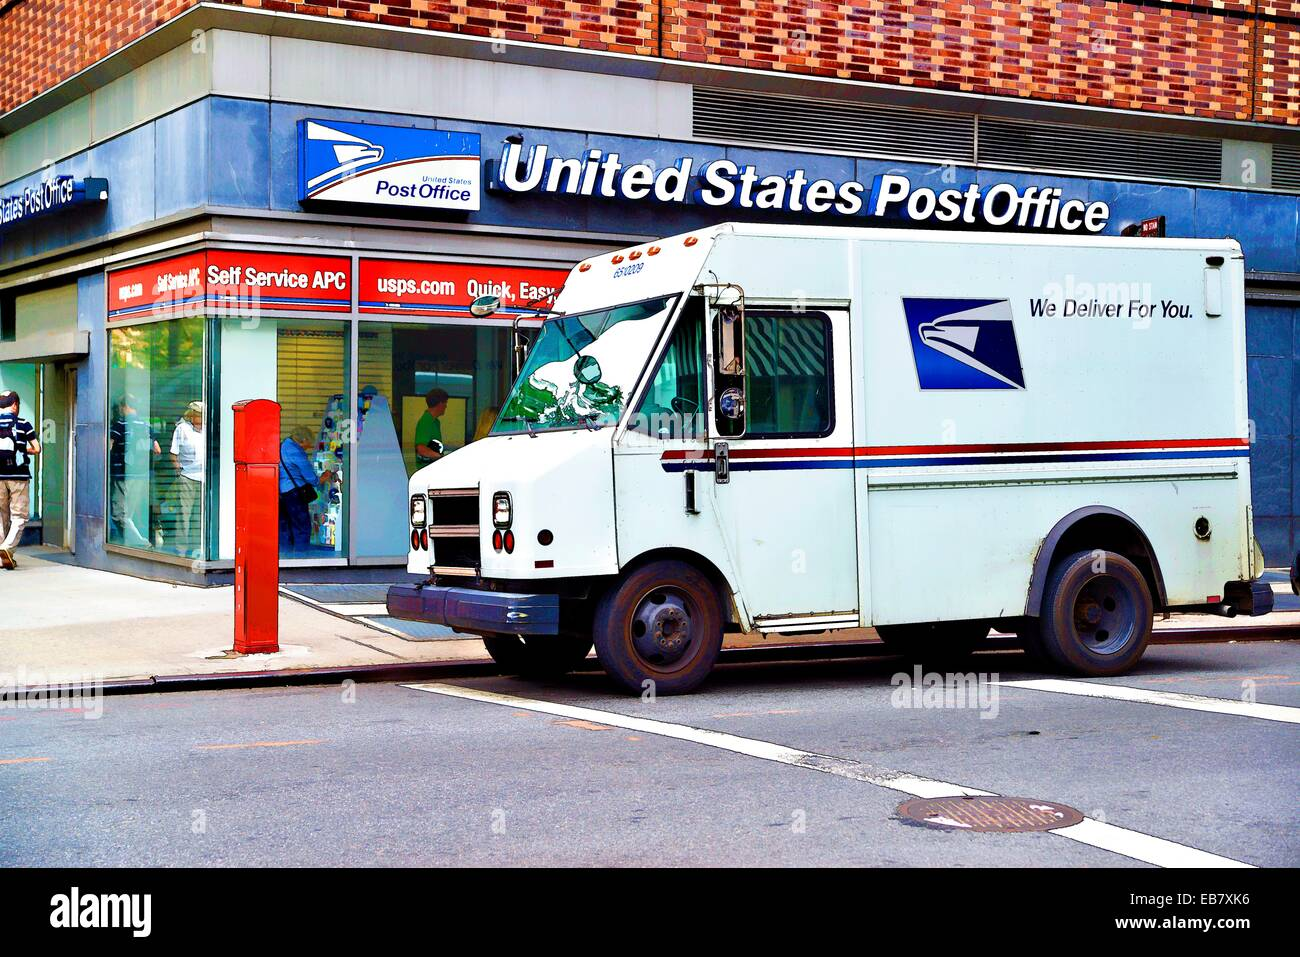 United Post Office Truck Stock Photos & United Post Office